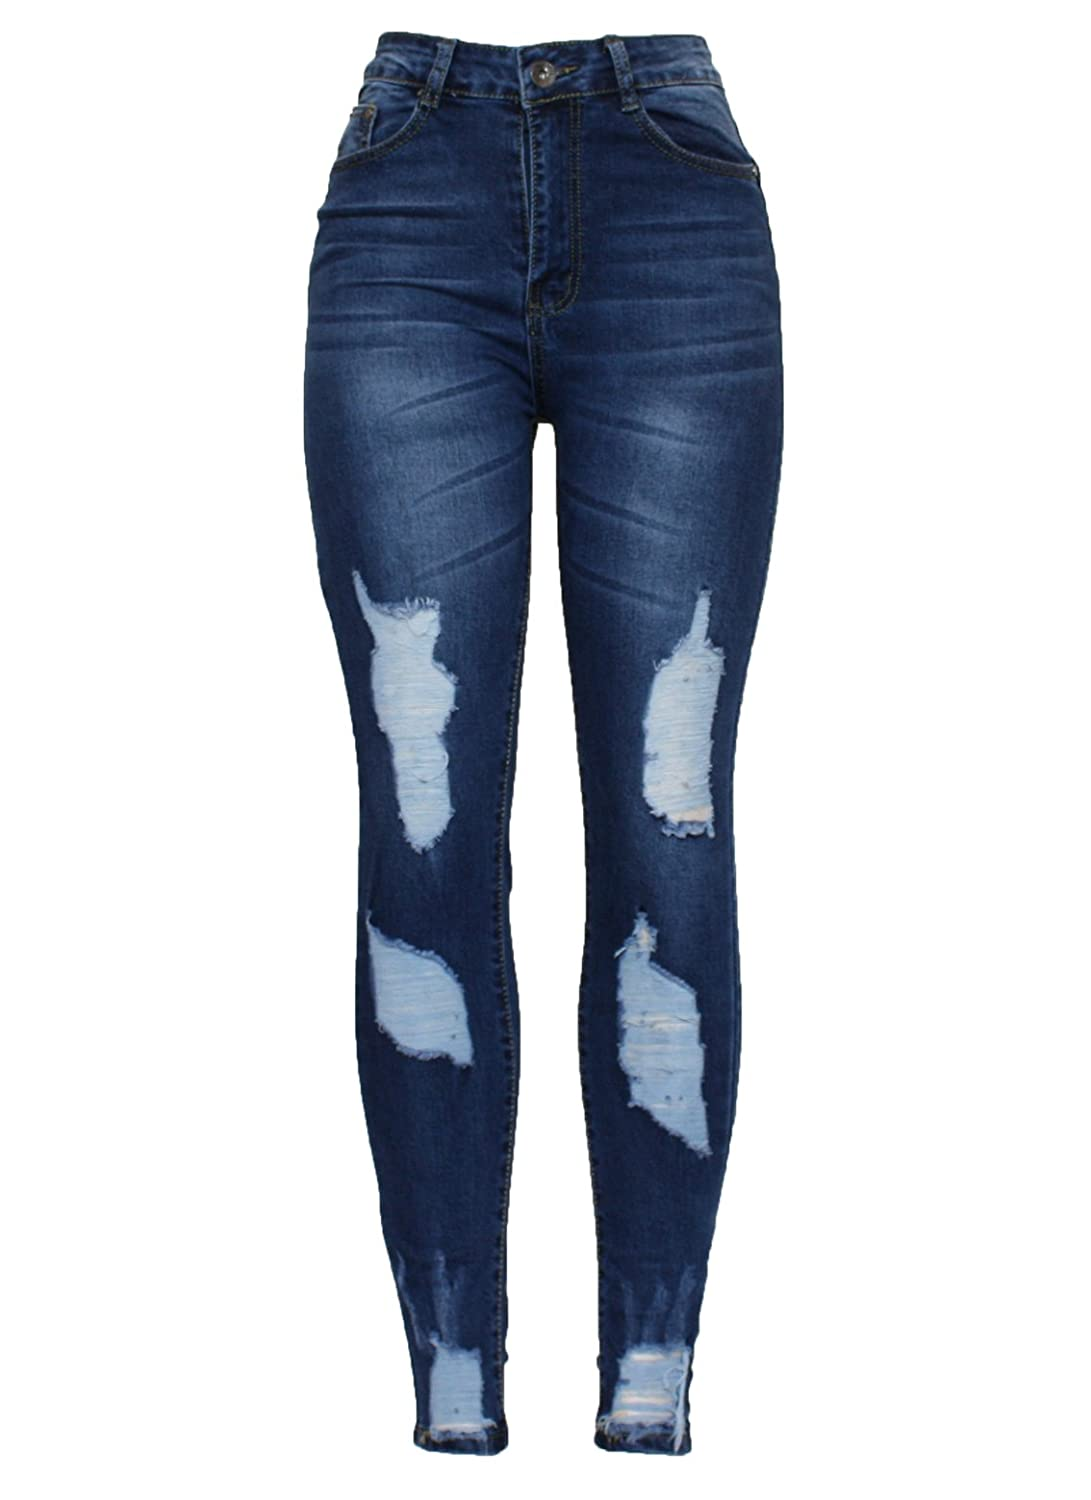 Barfly Fashion New Ladies Womens High Waisted White Blue Black Stretchy Knee Ripped Cut Skinny Slim Fit Denim Tube Pencil Jean Size 6-20